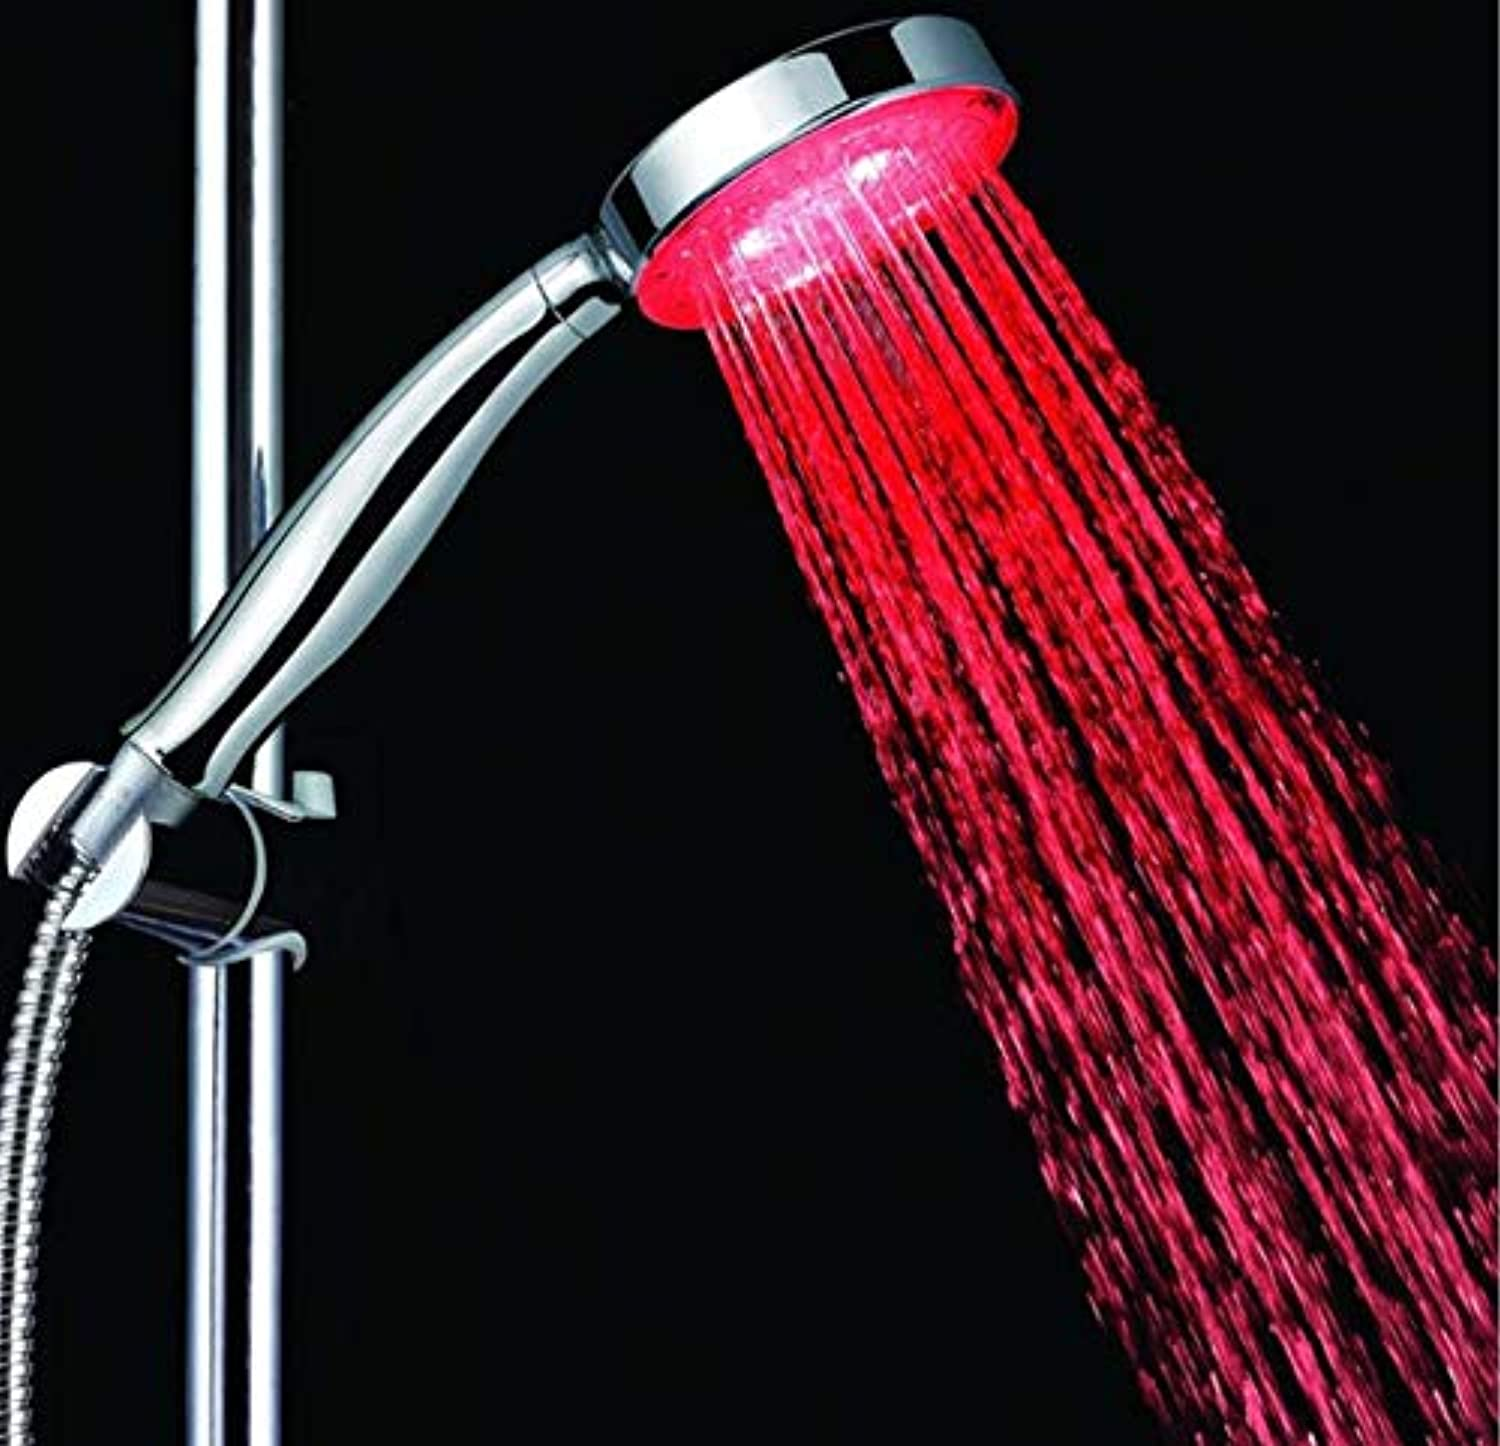 ROKTONG Taps Taps Taps Shower Self-Powered Hand-Held Circular Shower Feels Good Shower Single Red Shower